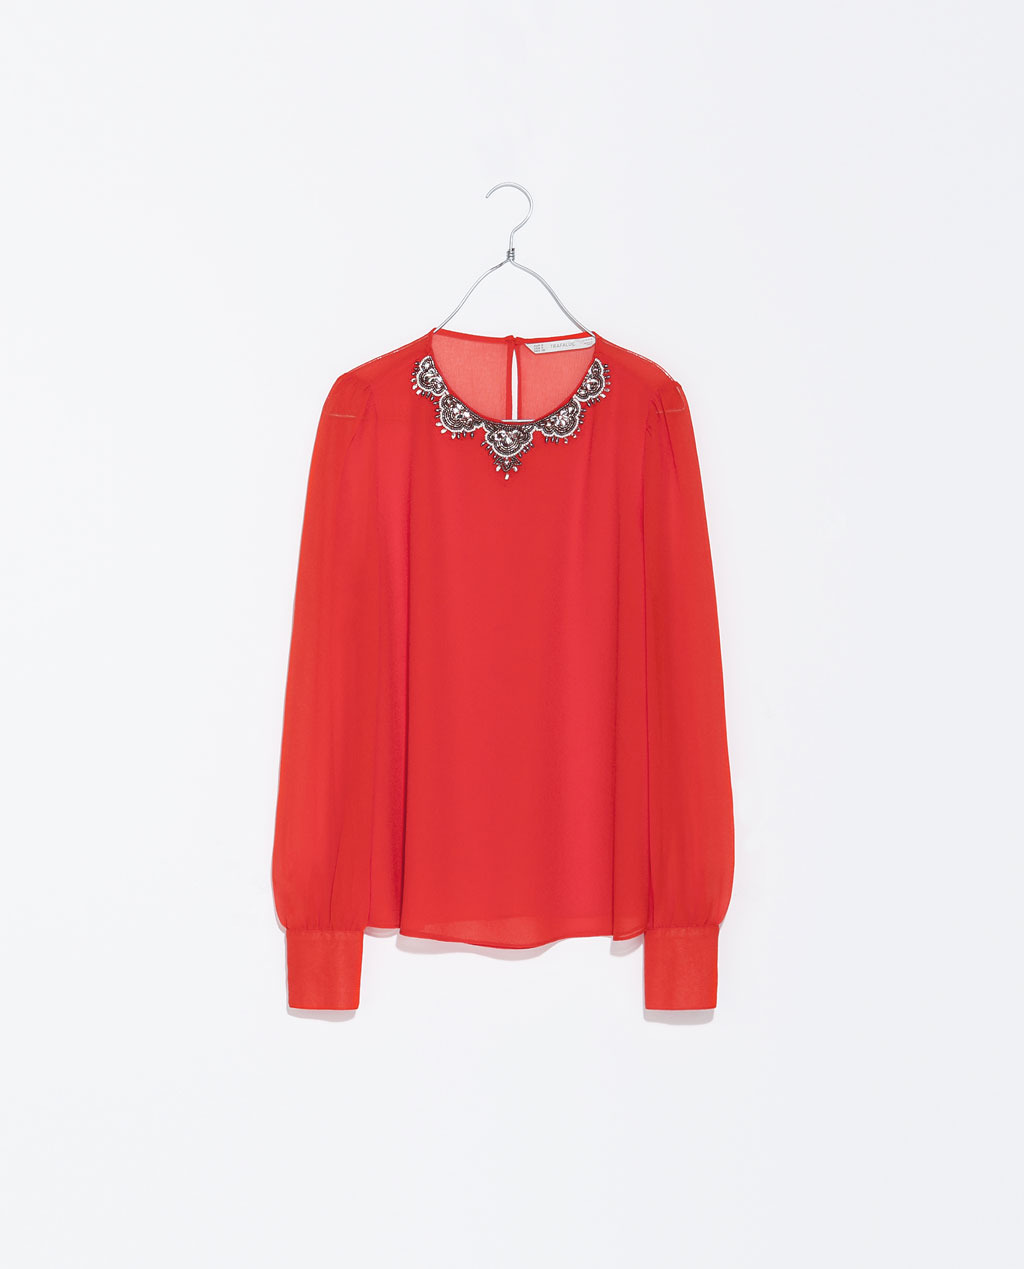 Top With Collar Detail - neckline: round neck; pattern: plain; style: blouse; predominant colour: true red; secondary colour: black; occasions: casual, evening, occasion, creative work; length: standard; fibres: polyester/polyamide - 100%; fit: loose; sleeve length: long sleeve; sleeve style: standard; texture group: sheer fabrics/chiffon/organza etc.; pattern type: fabric; embellishment: beading; trends: hot brights, summer sparkle, sheer; season: s/s 2014